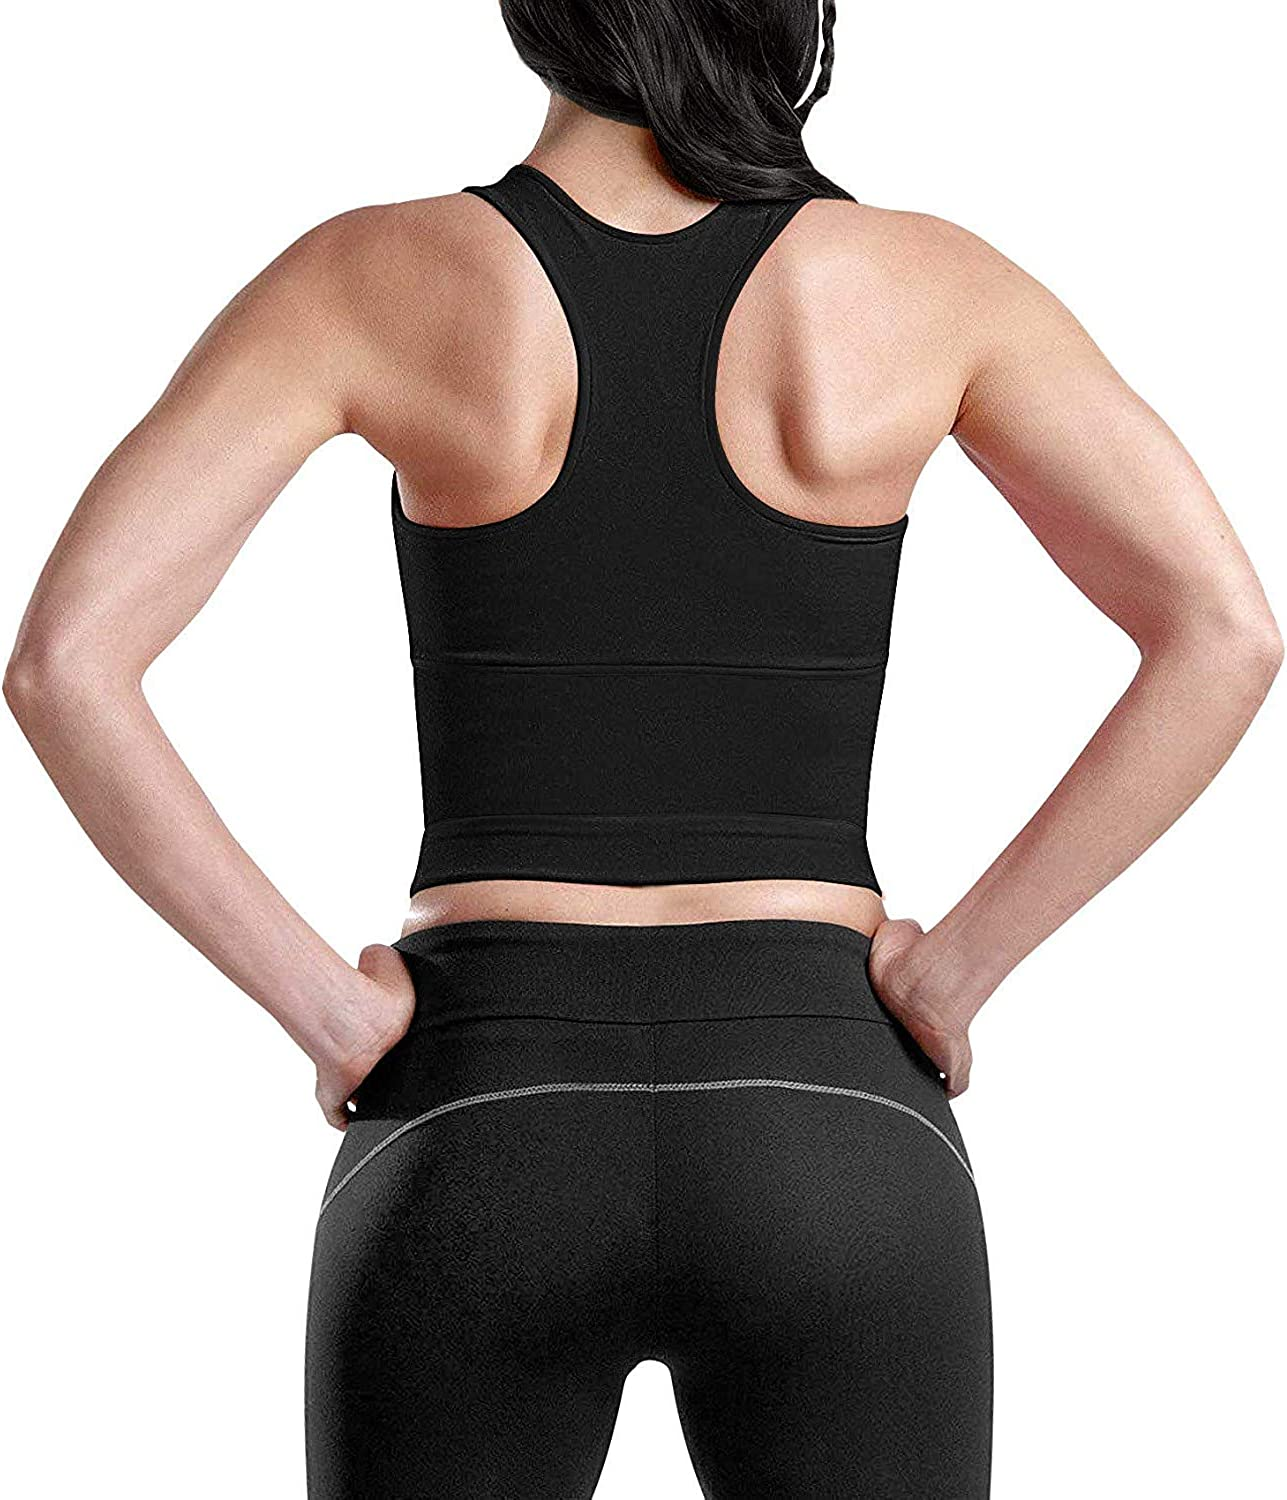 YA11888-Black-S YIANNA Women Waist Trainer Vest Zipper Sauna Suit Tank Top Hourglass Slimming Body Shaper Weight Loss Tummy Control